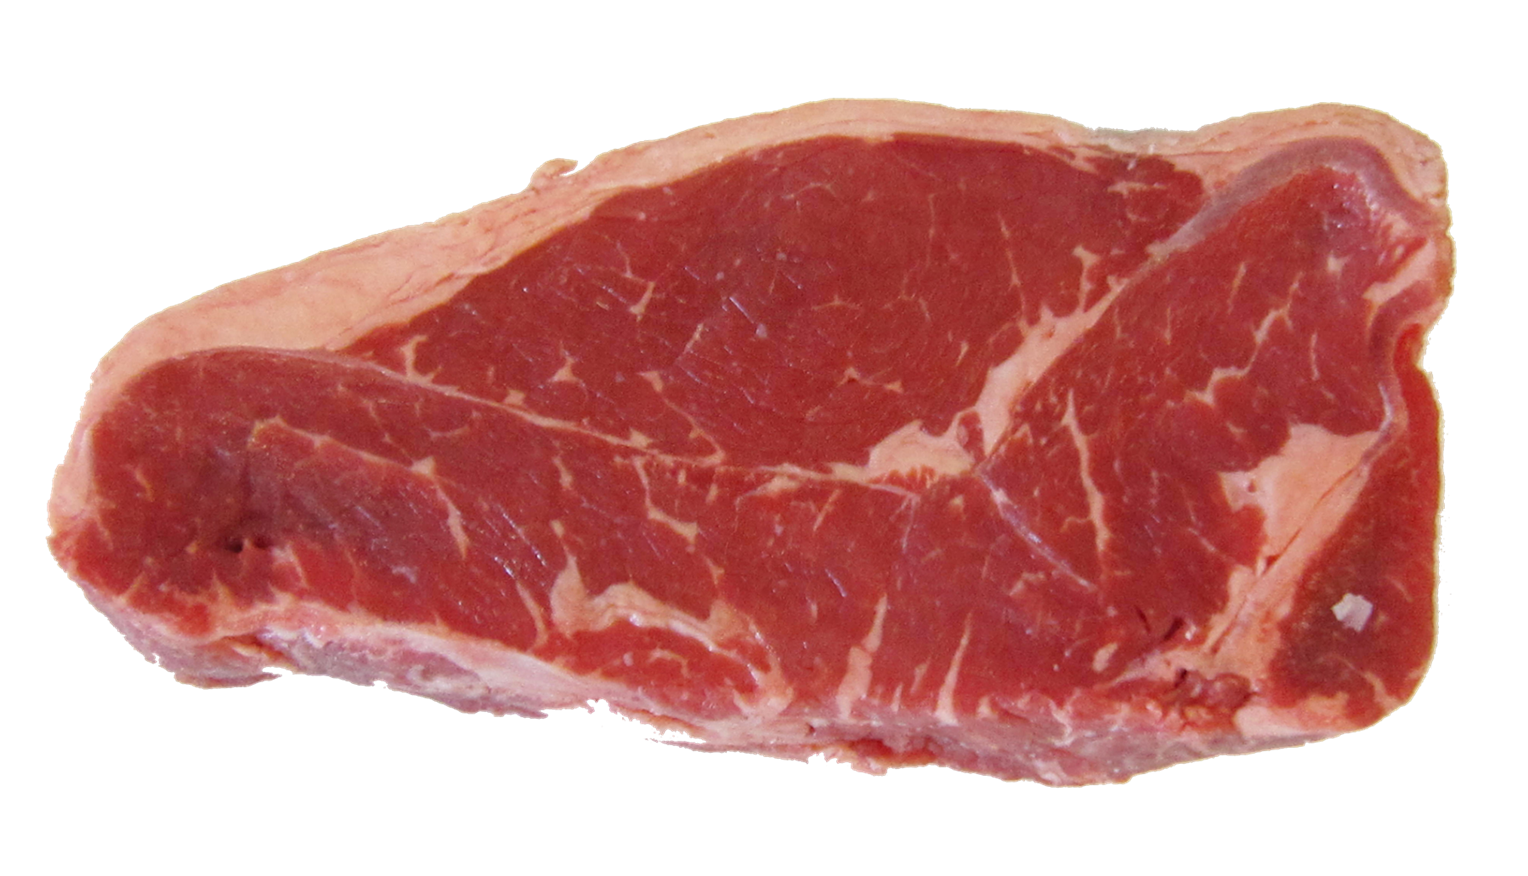 Meat PNG Images Transparent Free Download.